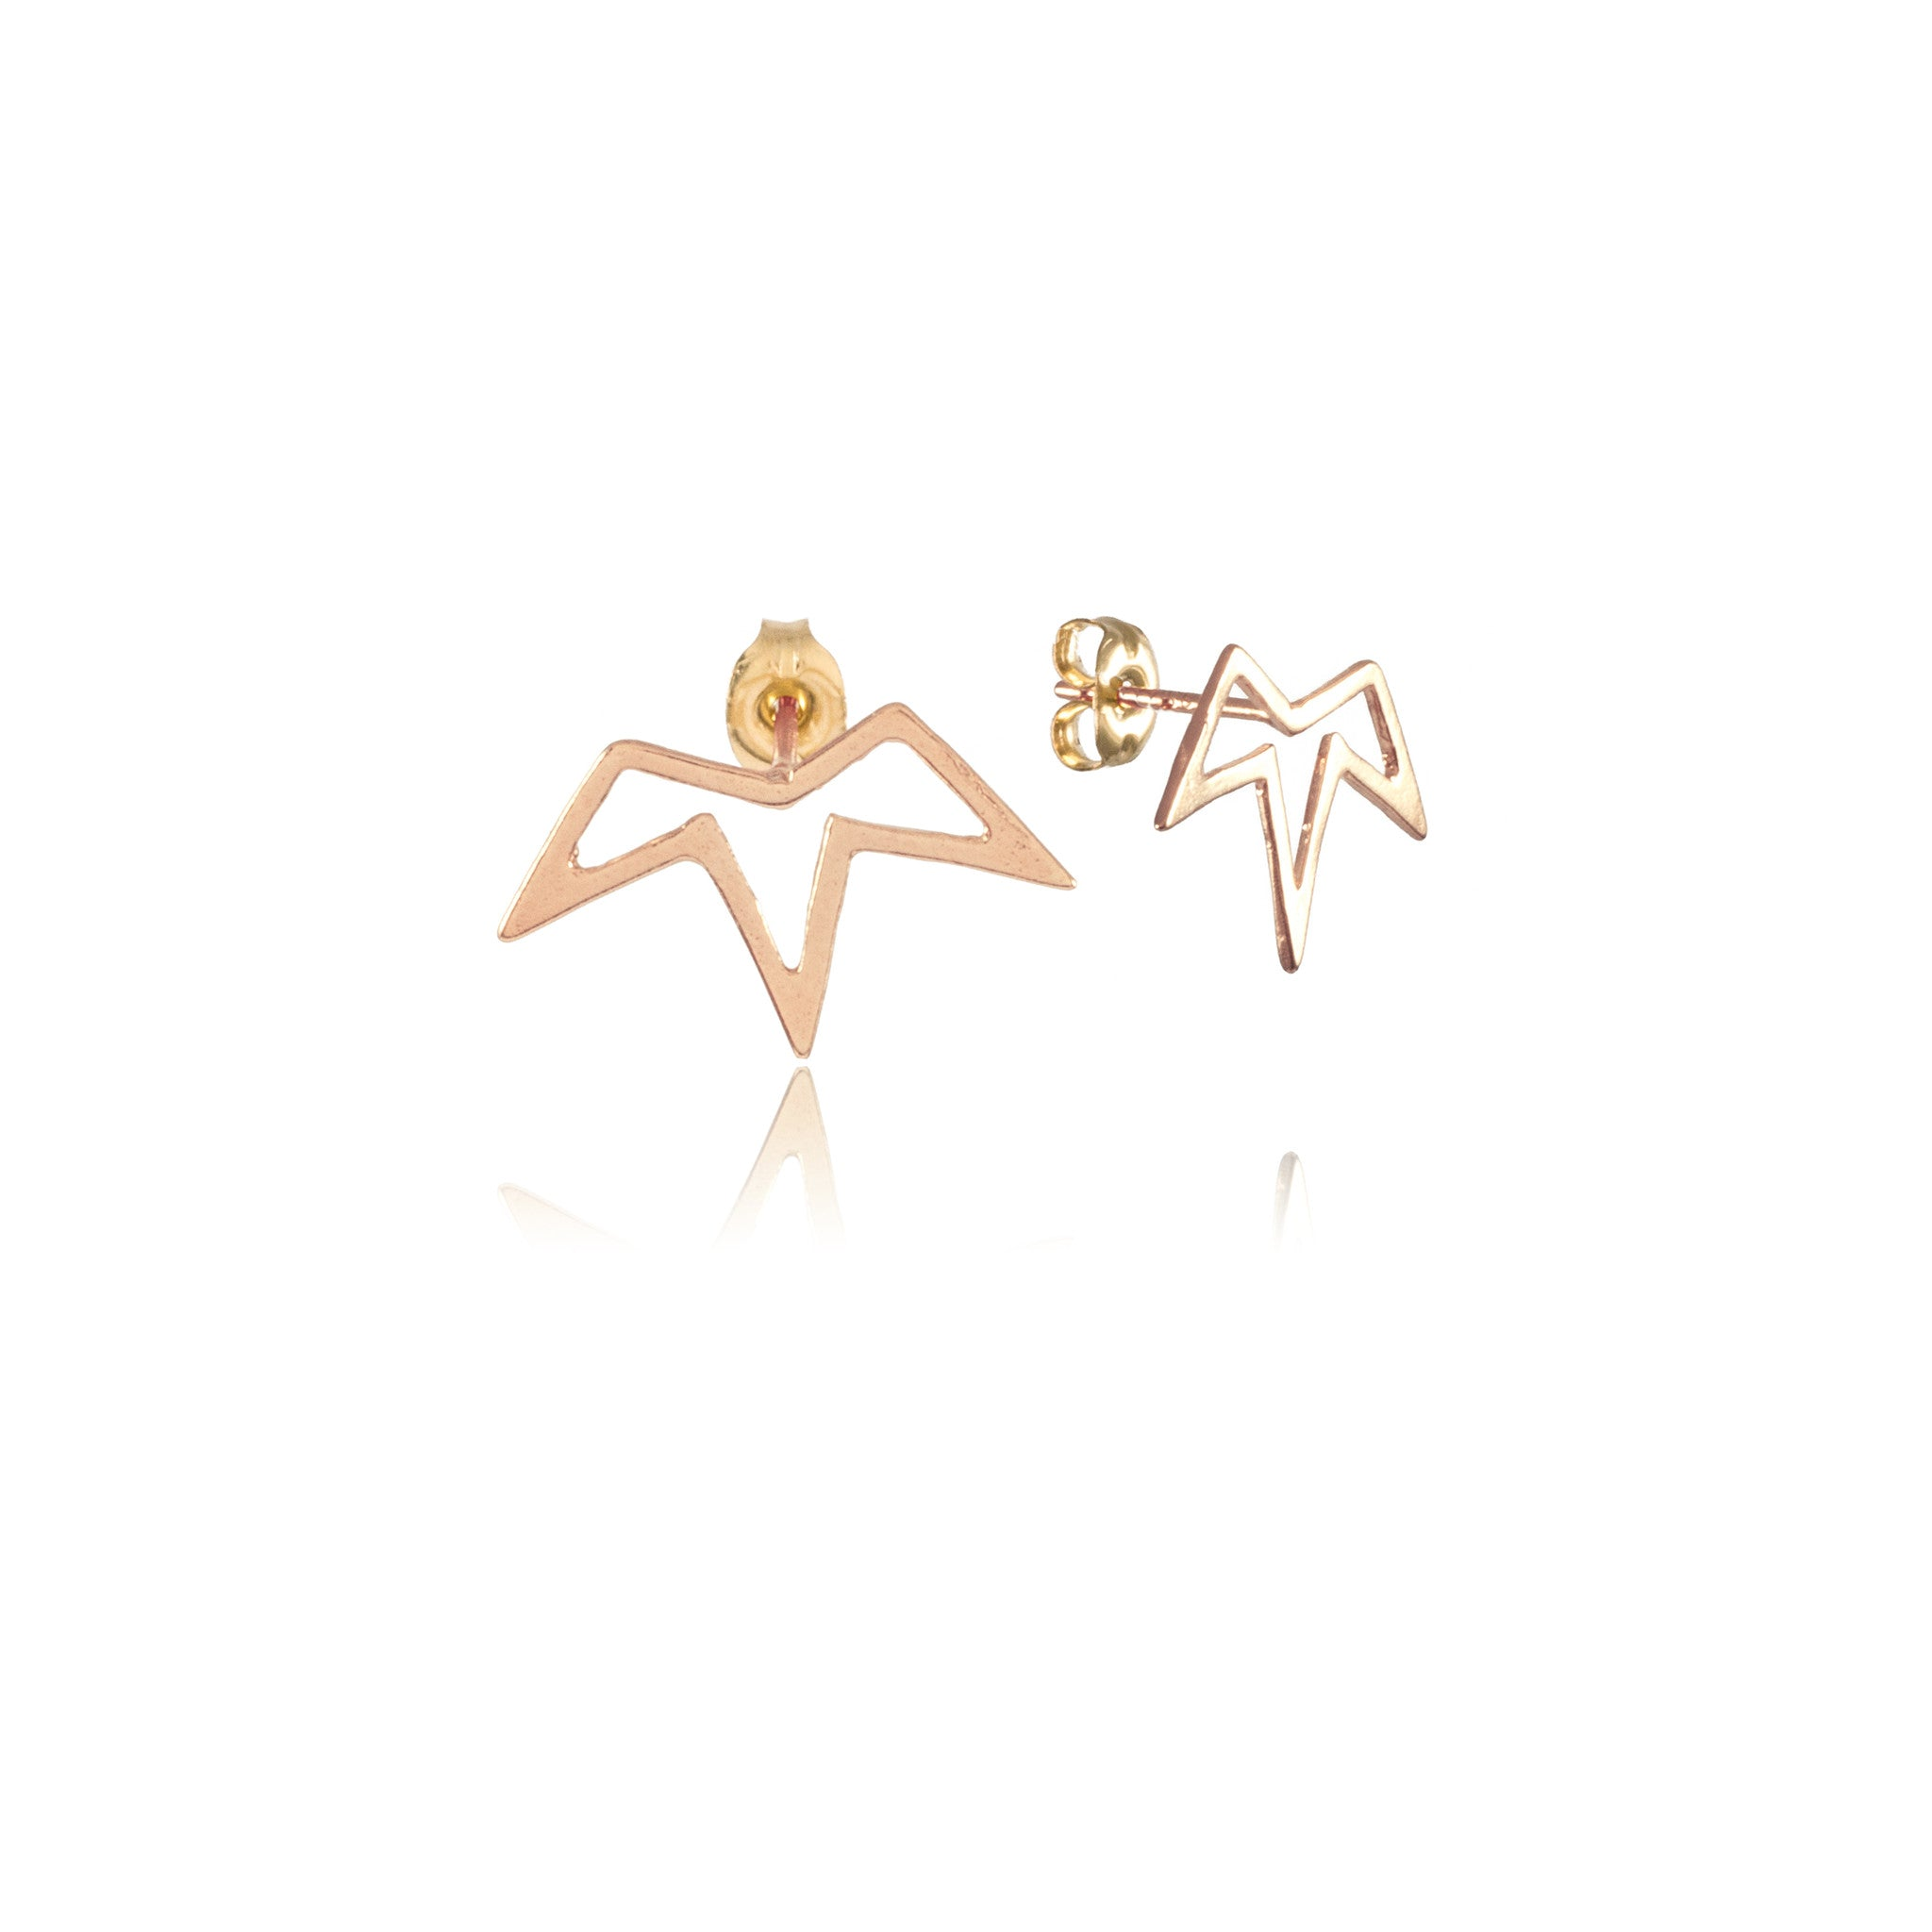 Spur Earrings